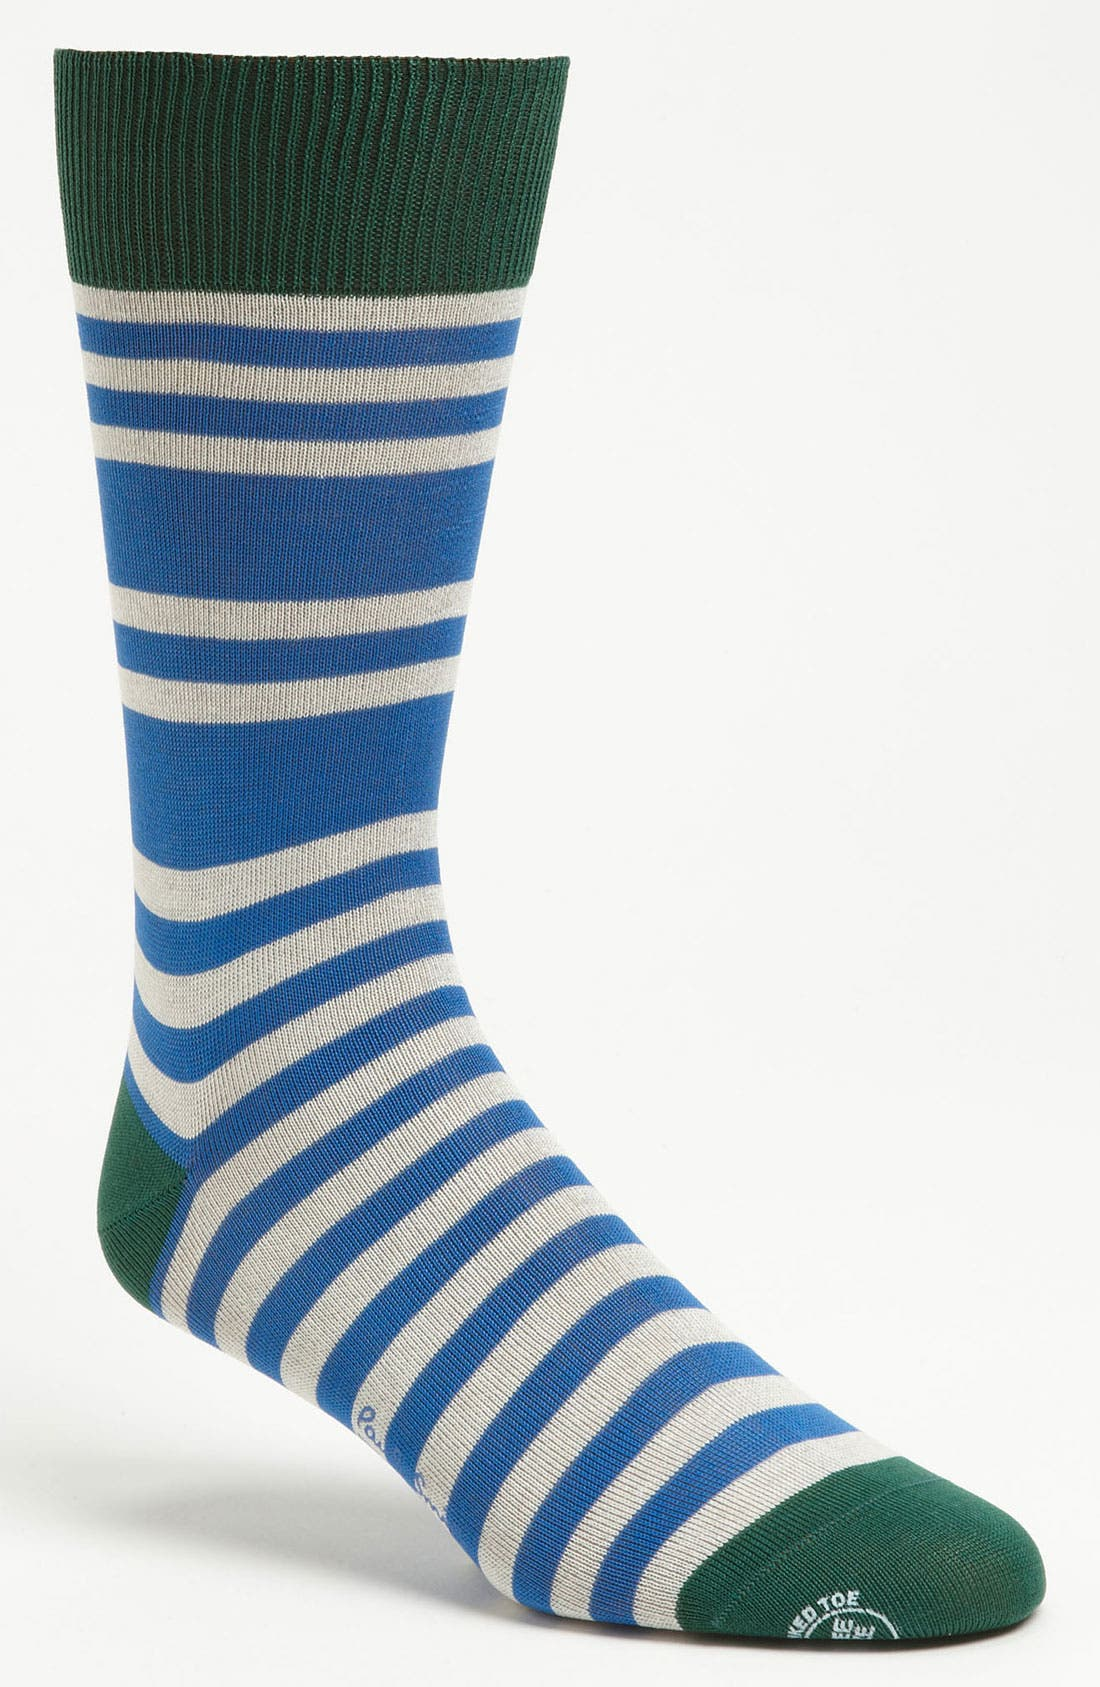 Main Image - Paul Smith Accessories 'Odd Bizmark' Socks